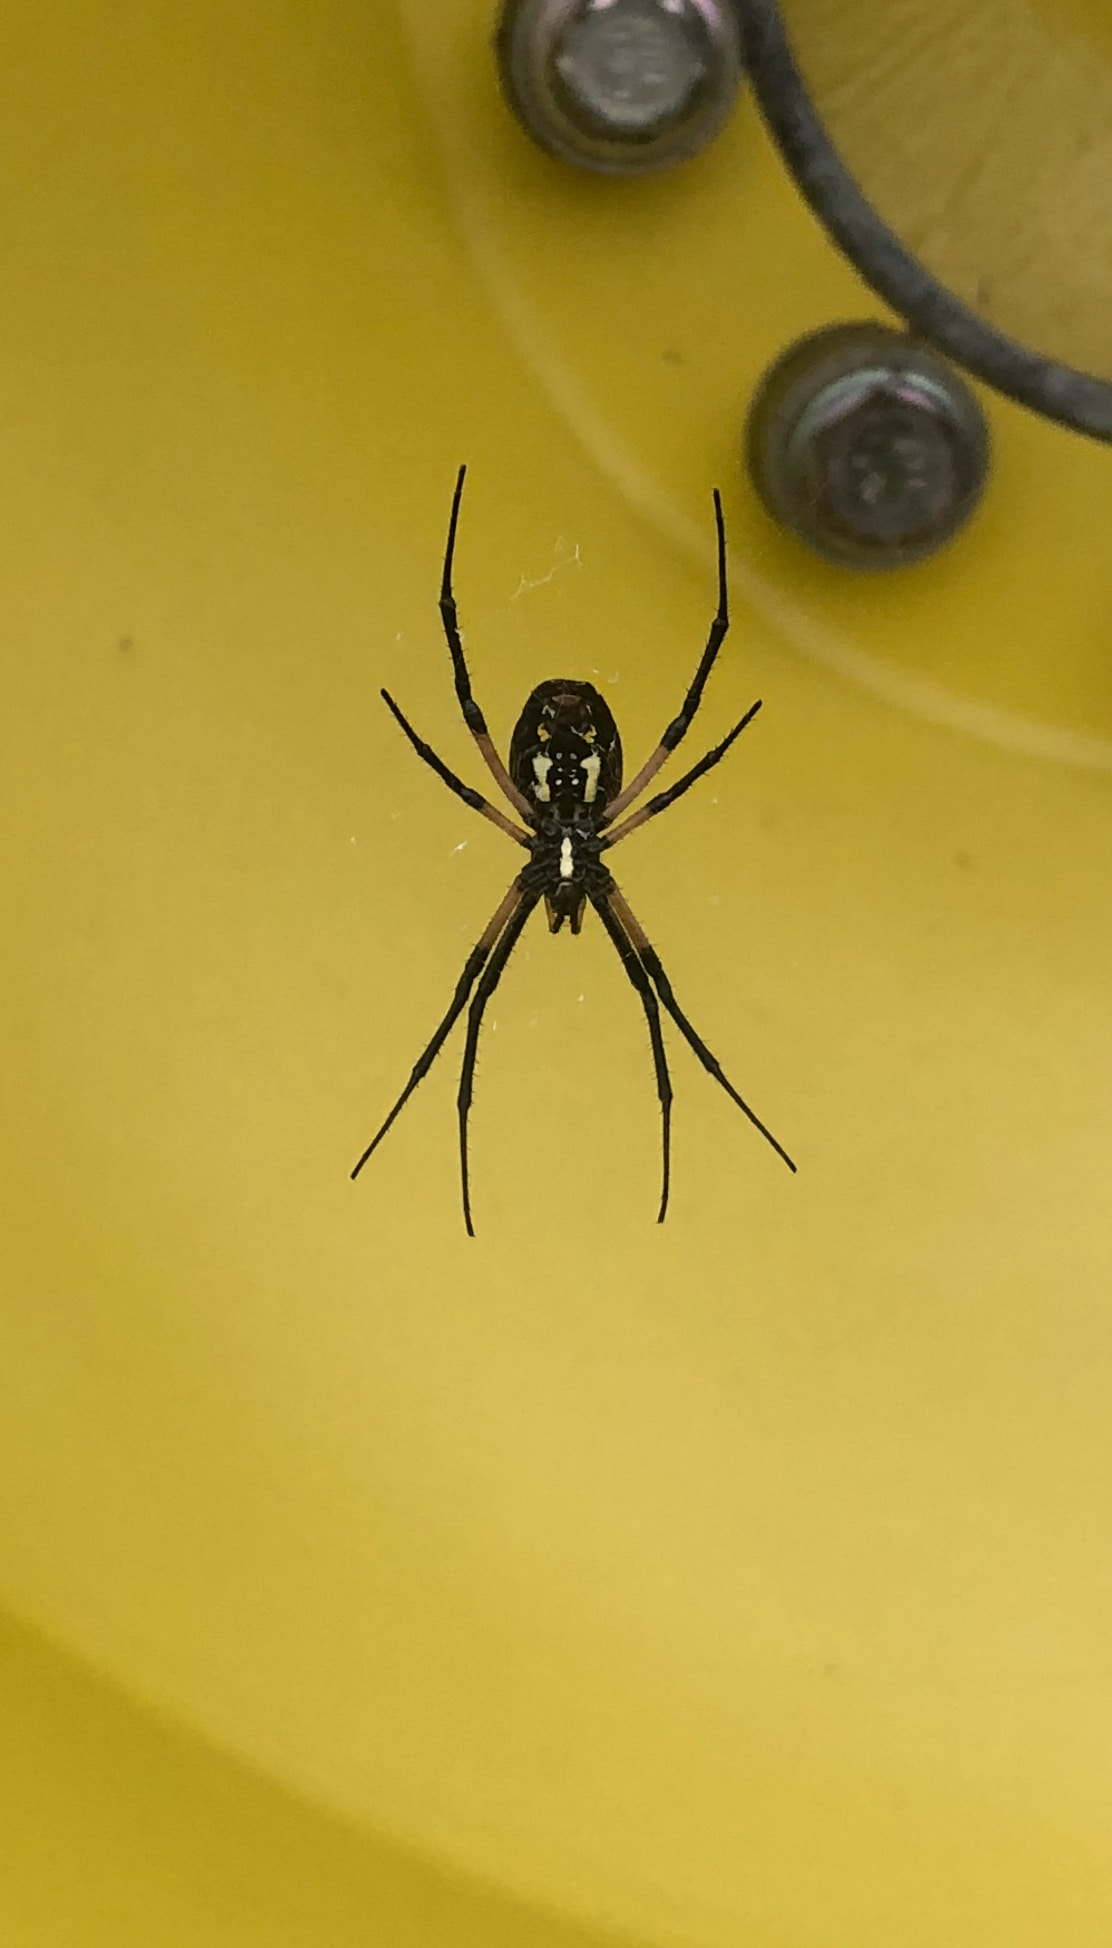 Picture of Argiope aurantia (Black and Yellow Garden Spider) - Ventral